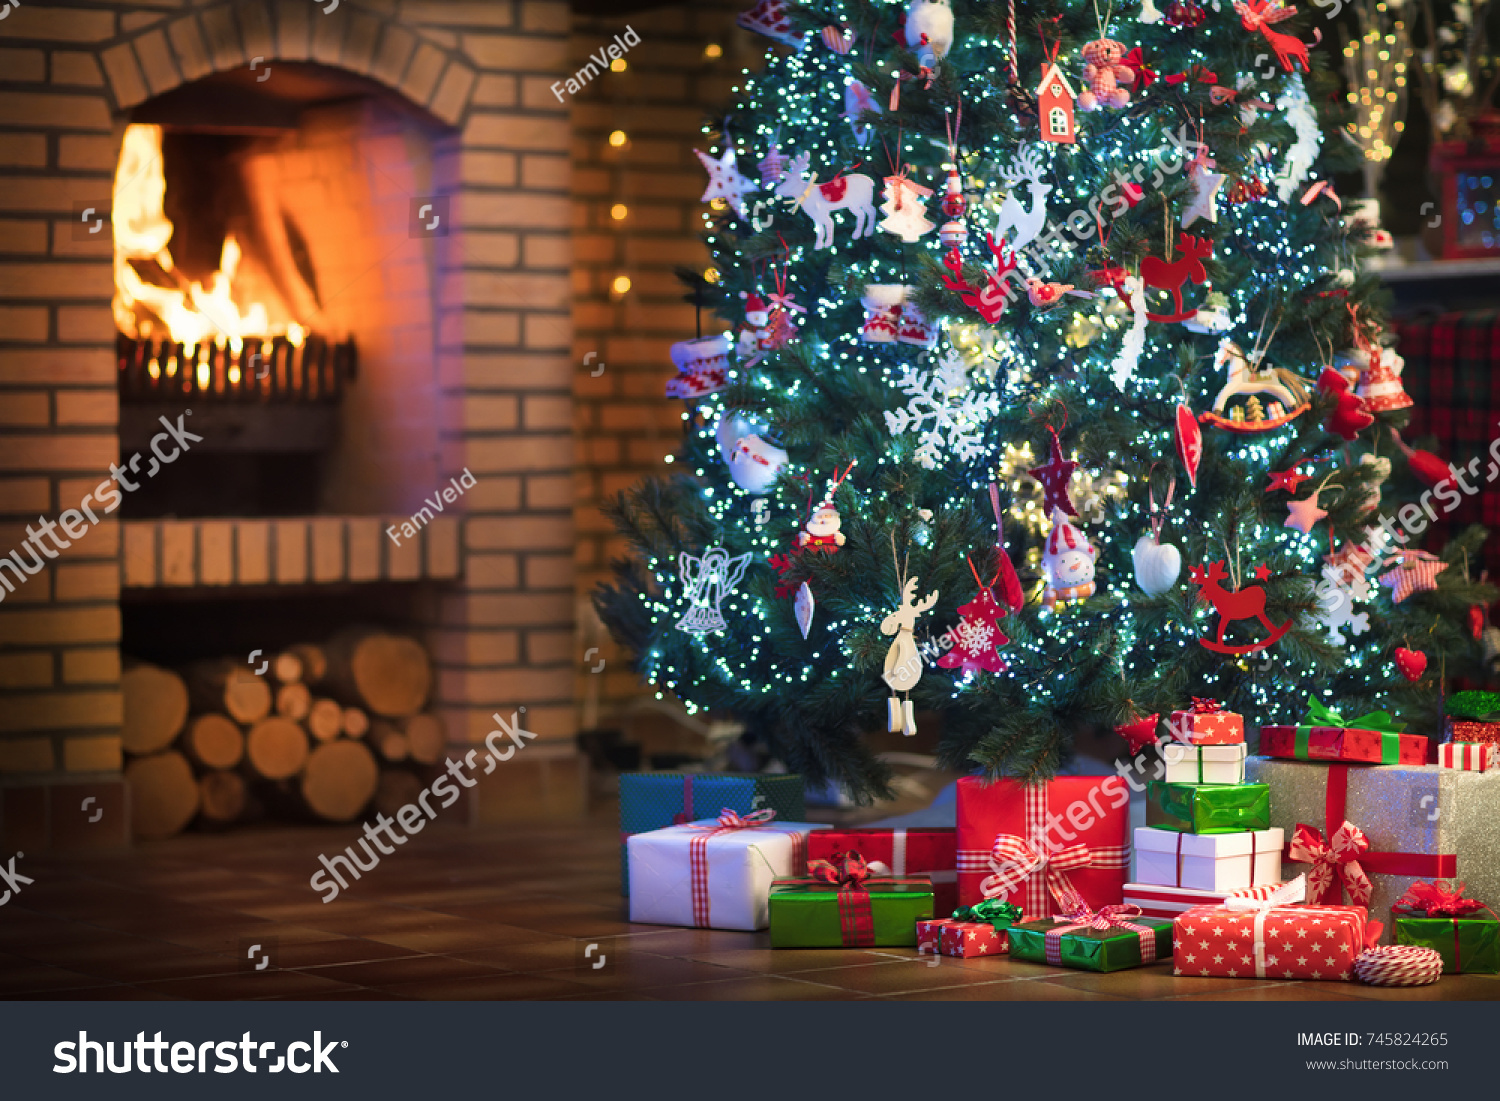 Christmas Home Interior Tree Fireplace Traditional Stock